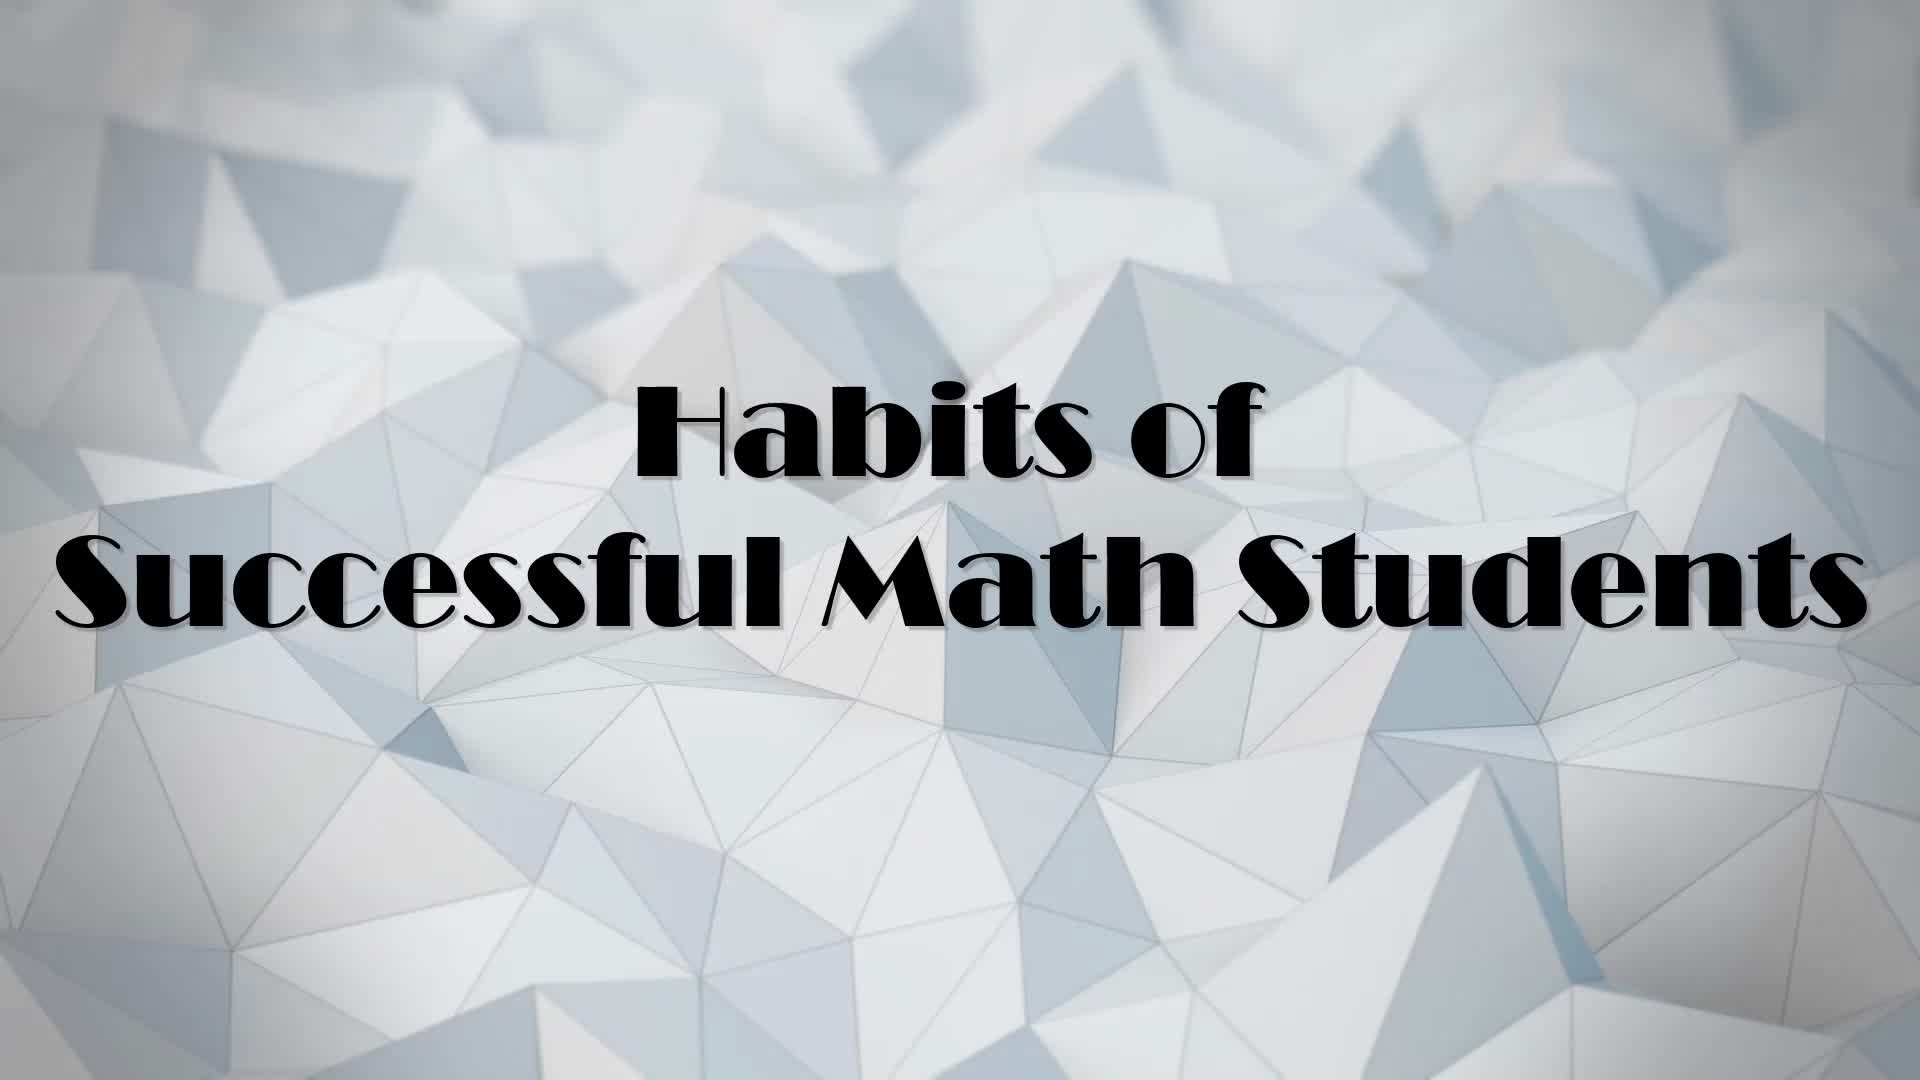 Habits of Successful Algebra Students